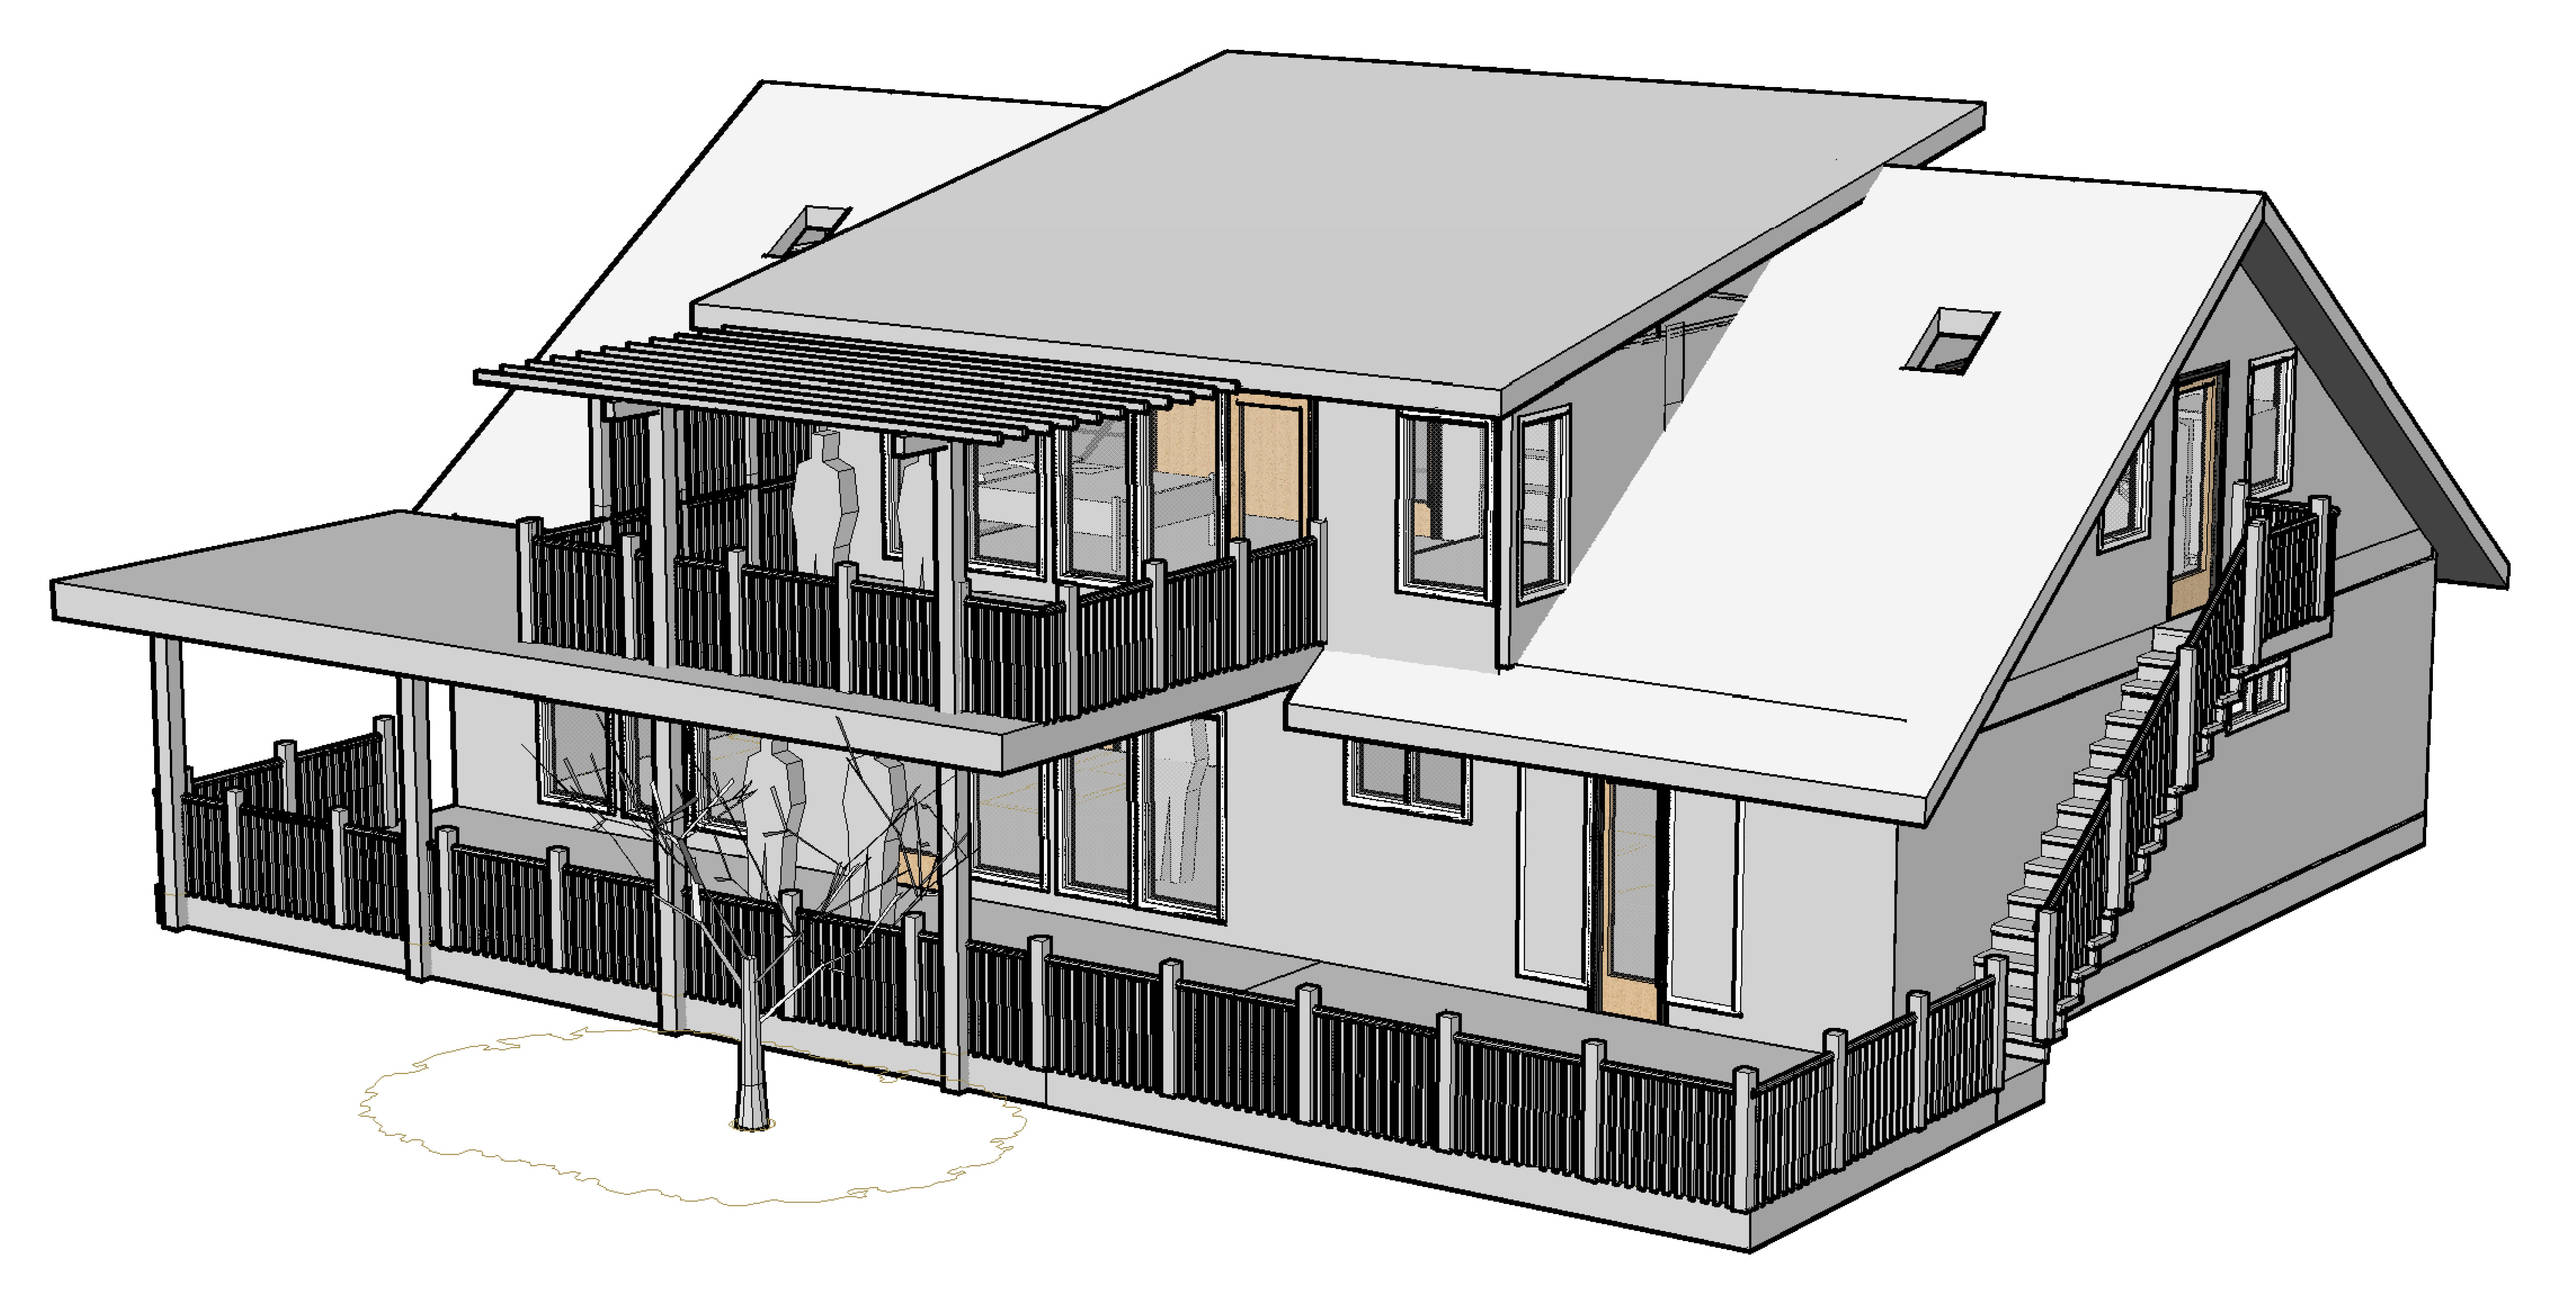 Backyard View of lower and upper decks and upper pop-up addition